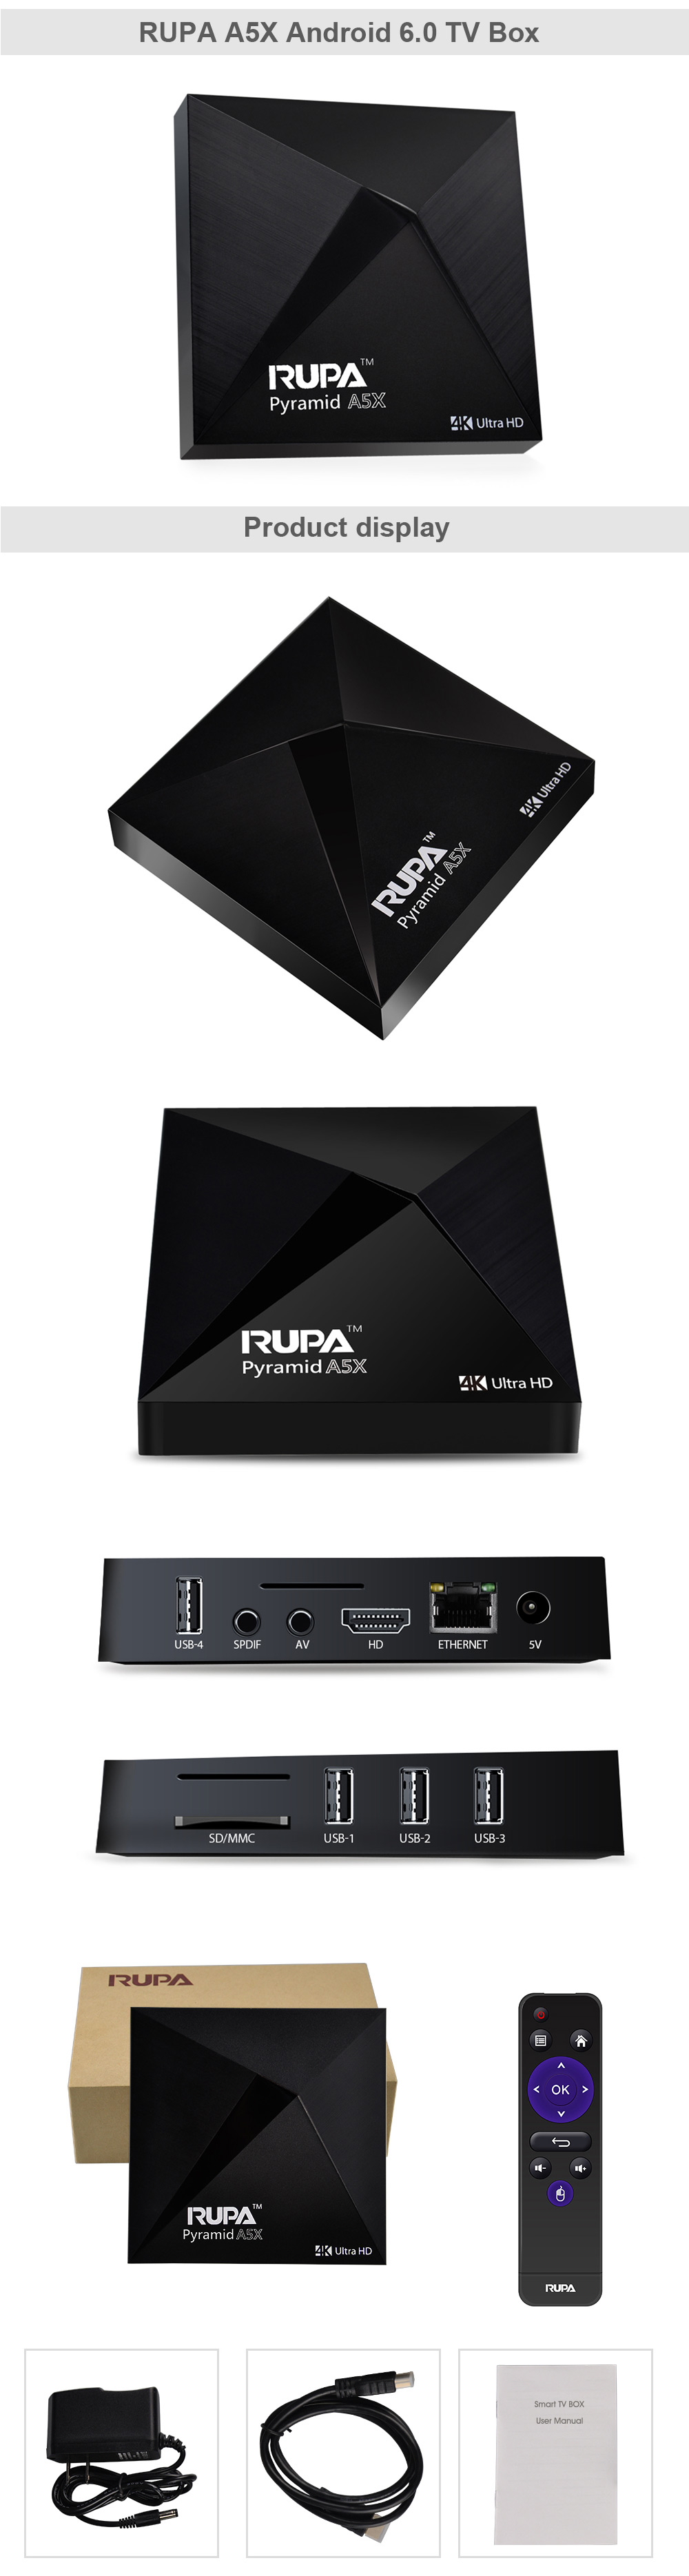 RUPA A5X TV Box Amlogic S905X Quad Core Android 6.0 BT 4.0